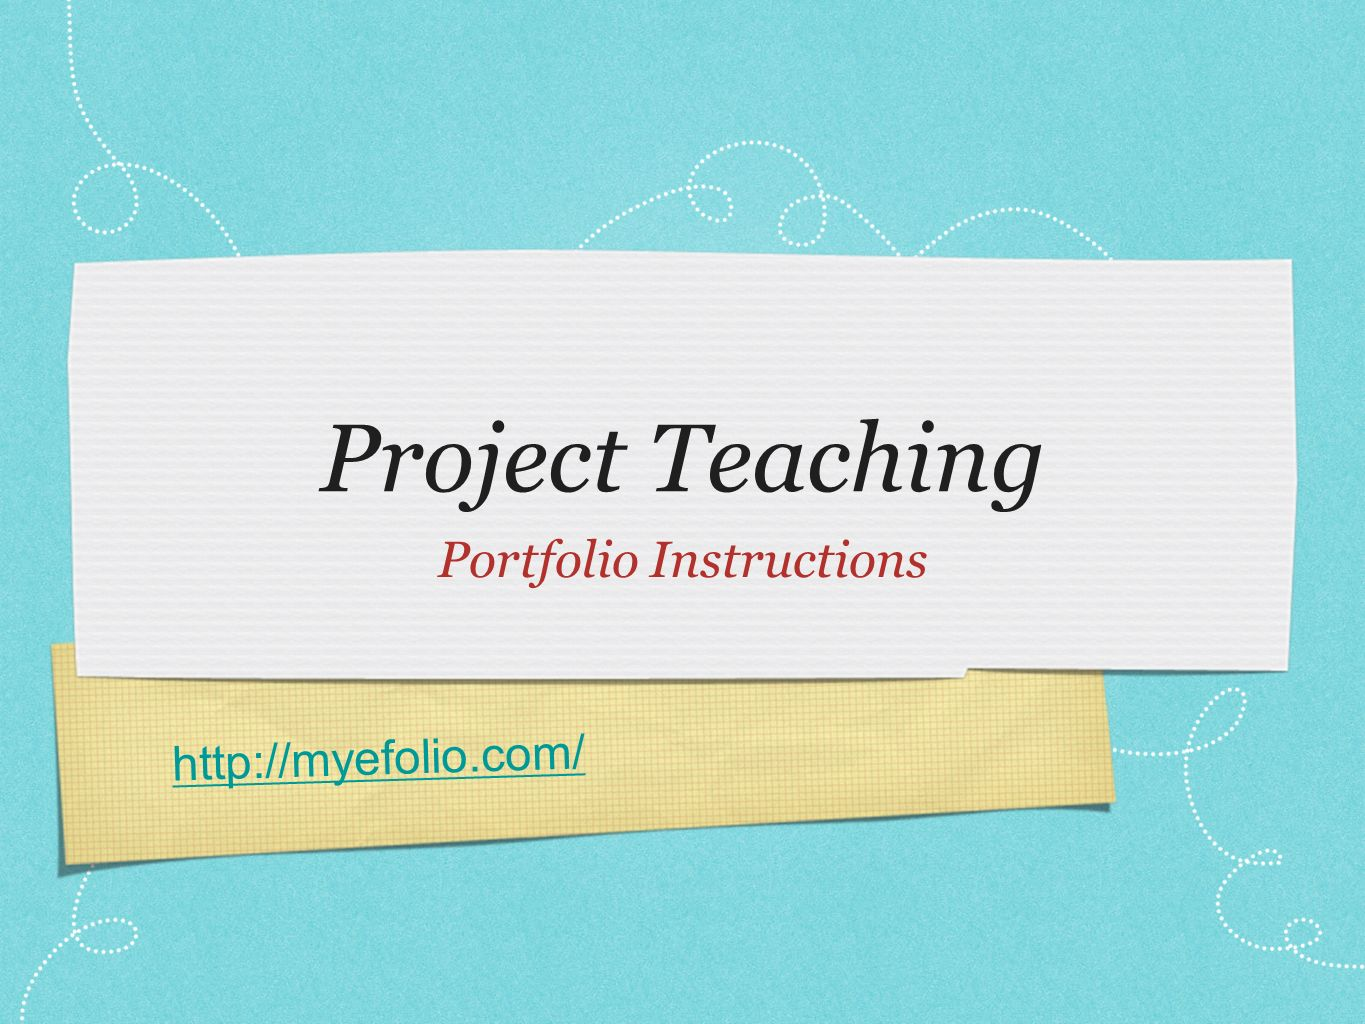 http://myefolio.com/ Project Teaching Portfolio Instructions